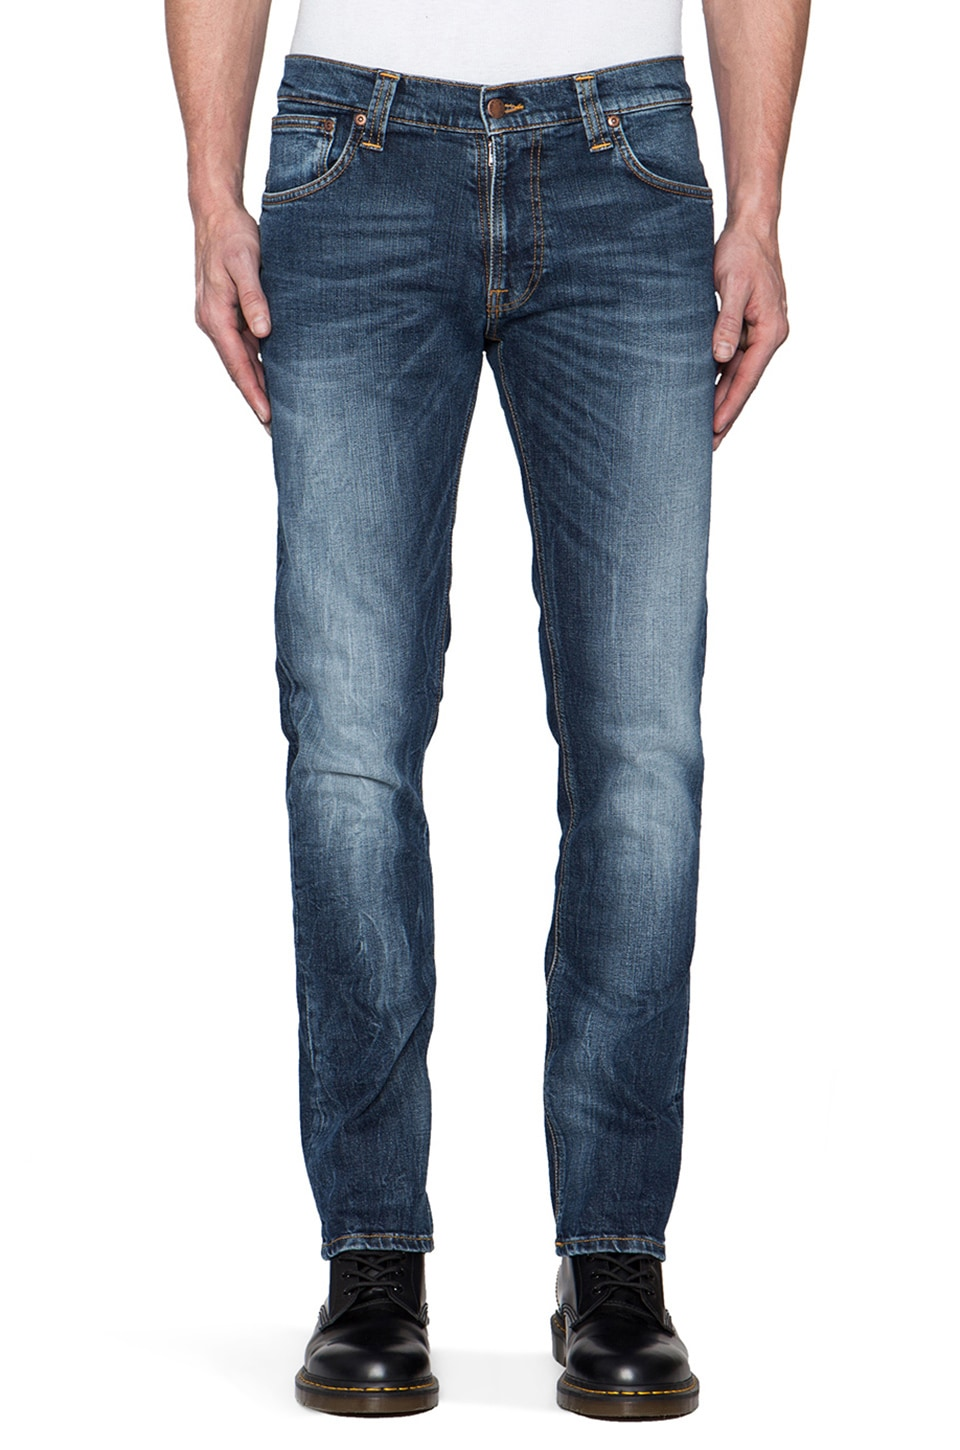 Nudie Jeans Thin Finn in Org. Midnight Worn